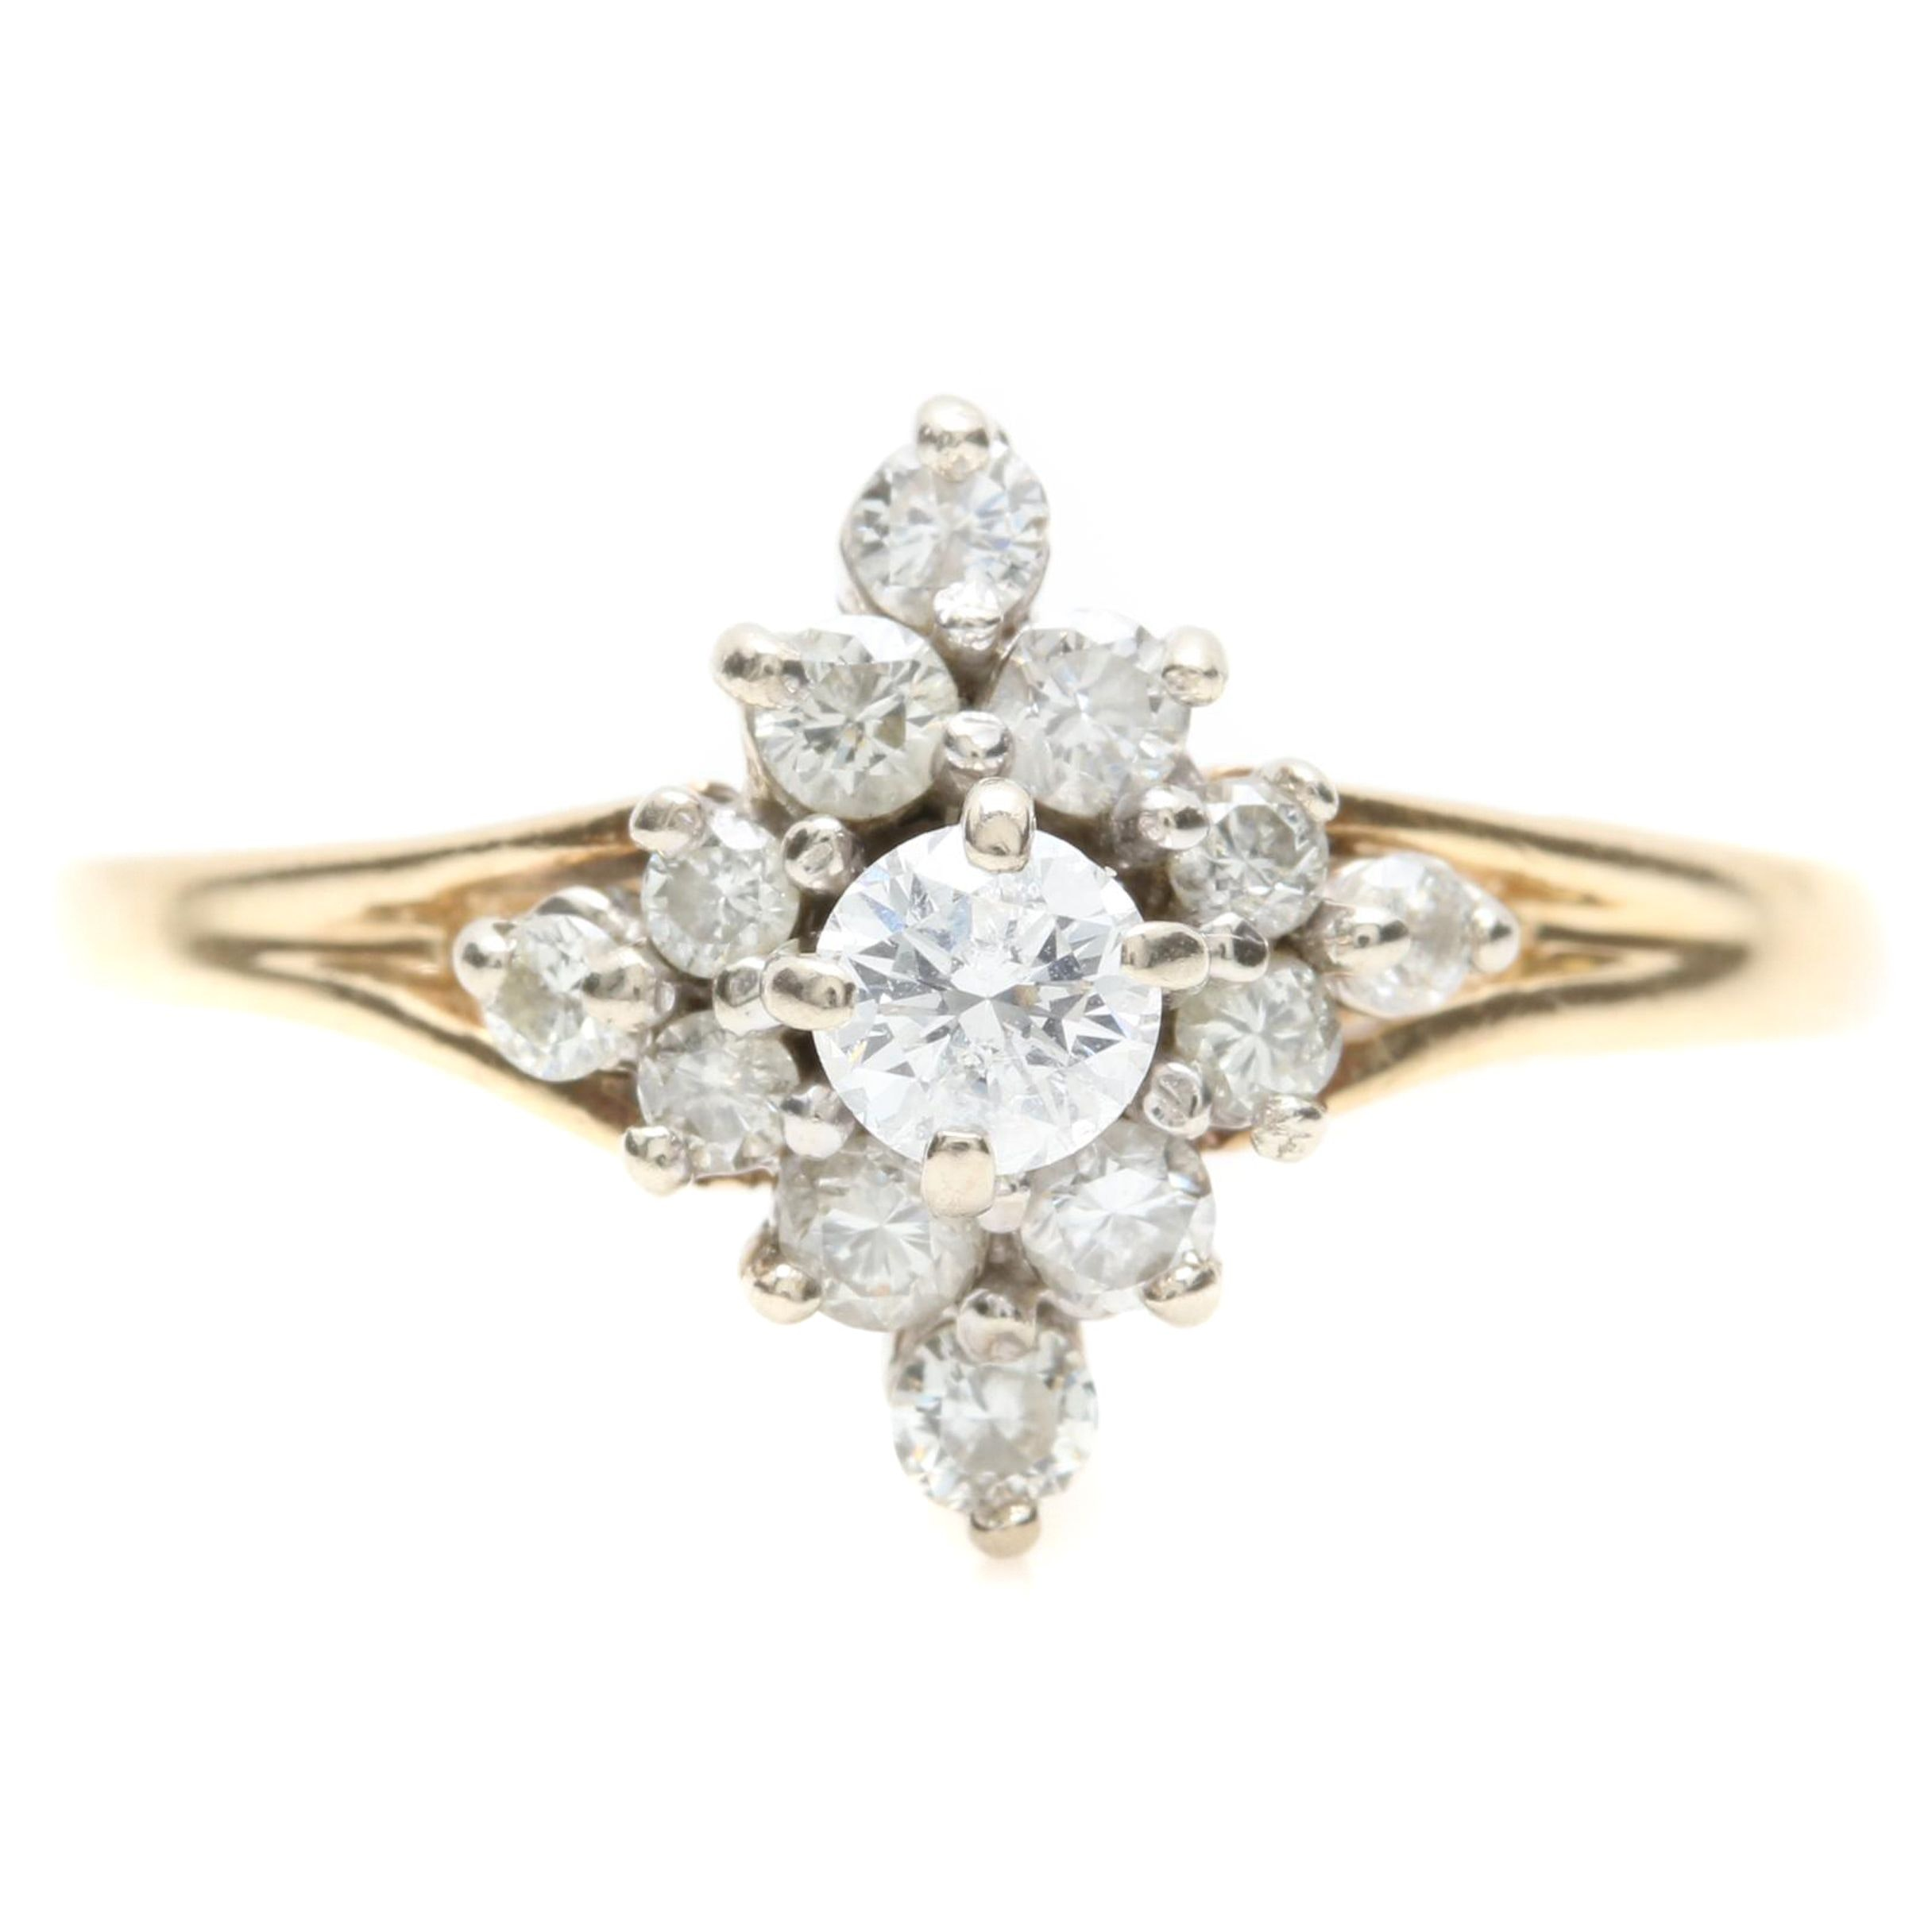 14K Yellow Gold Diamond Cluster Ring with White Gold Accents